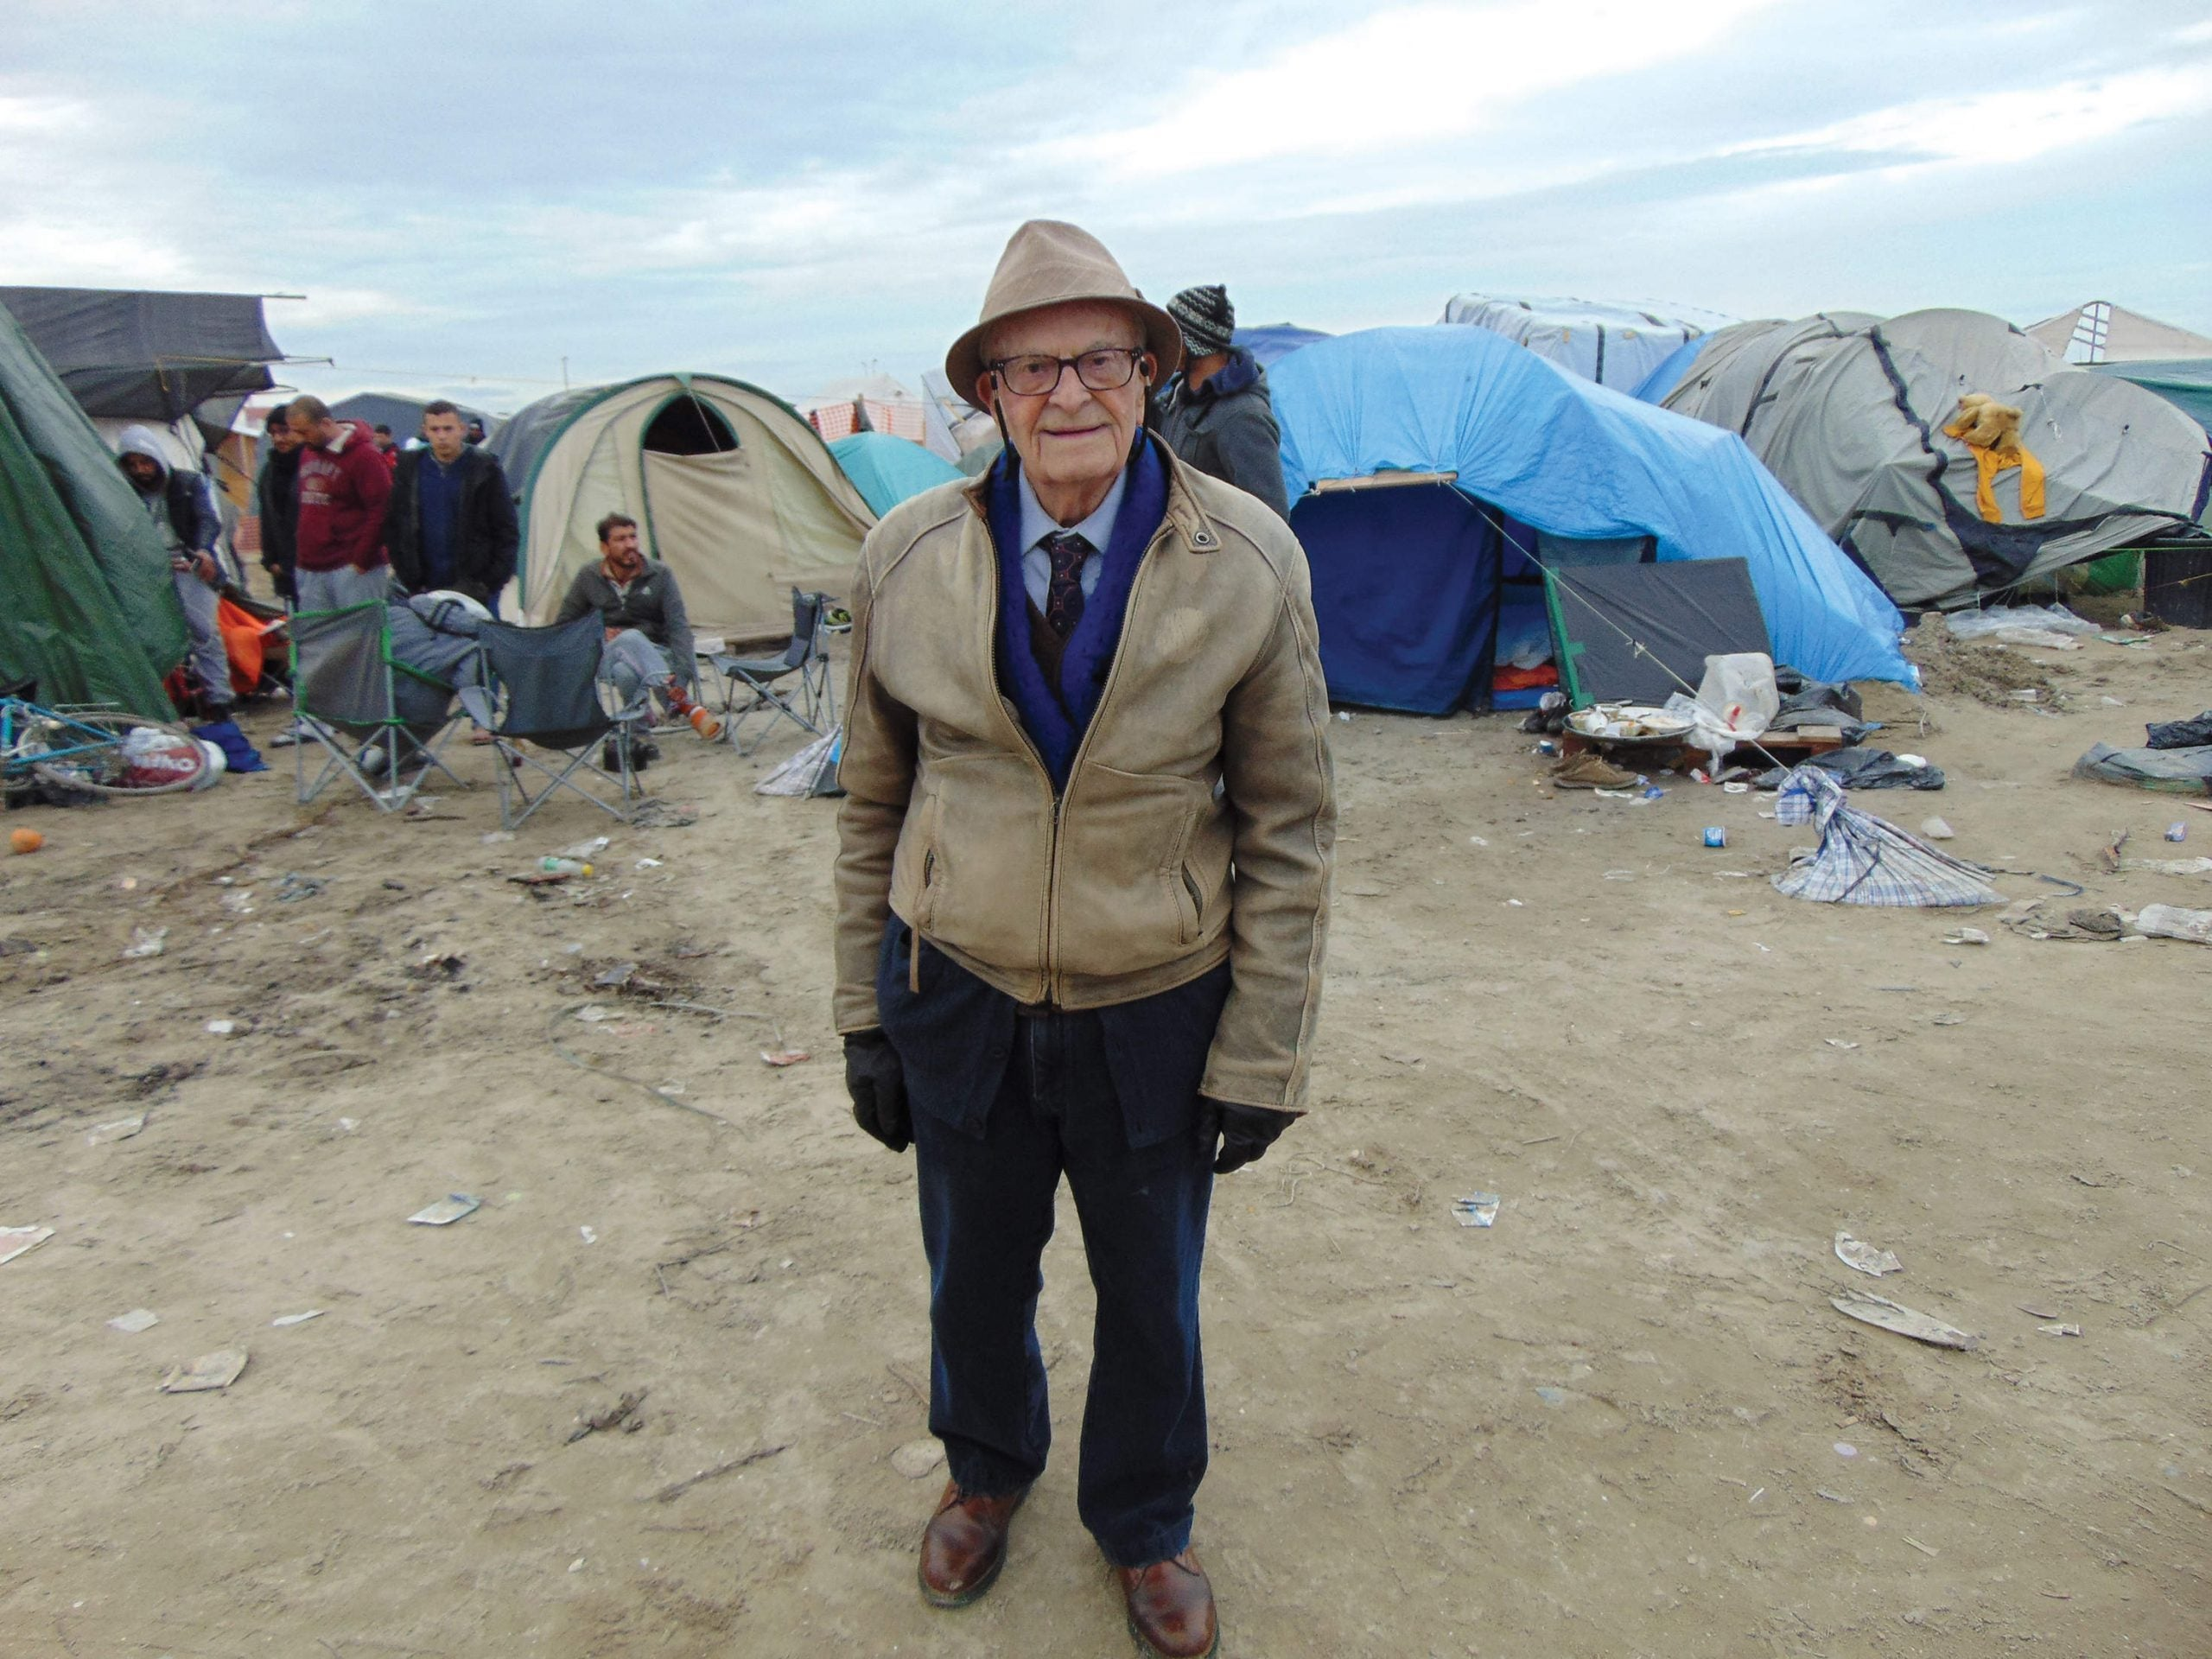 """Our brothers' keepers: Harry Leslie Smith visits the """"Jungle"""" in Calais"""